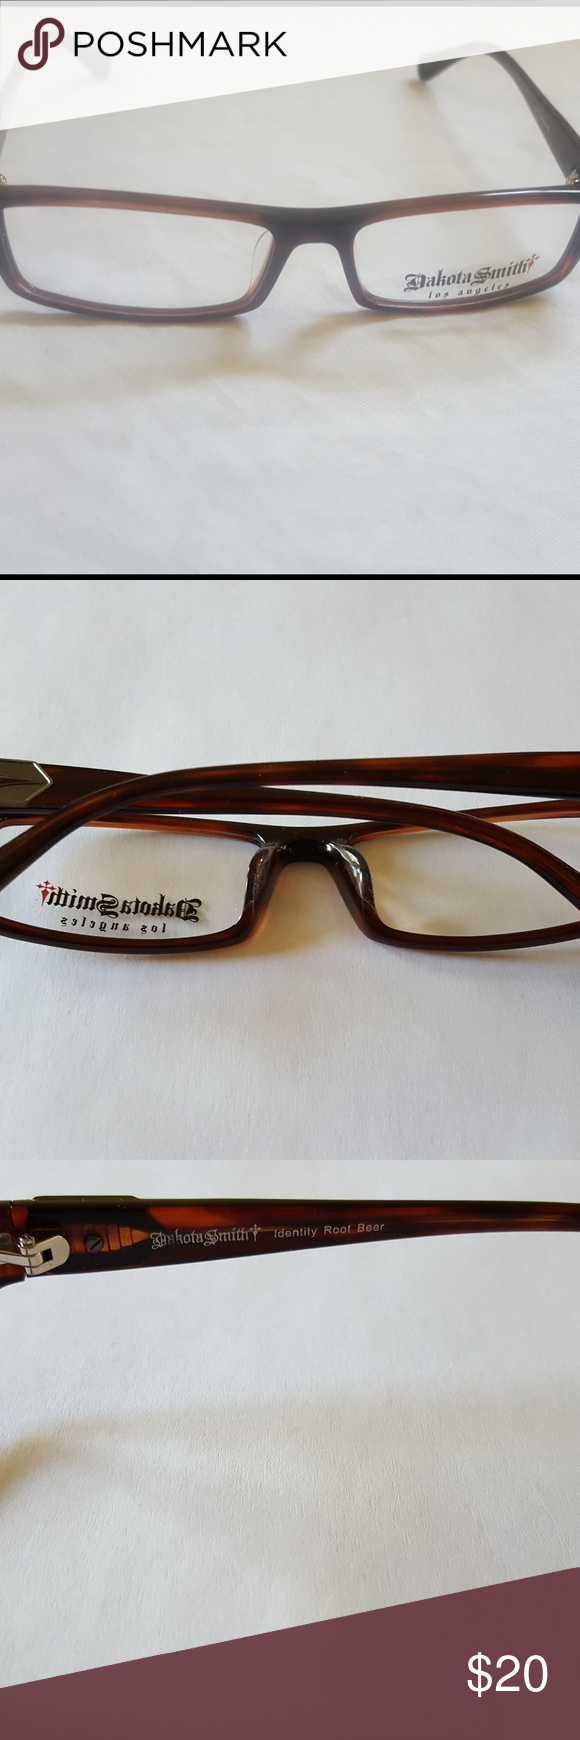 💲1-HOUR SALE💲Dakota Smith Frames Nwot .... Non Prescription ...